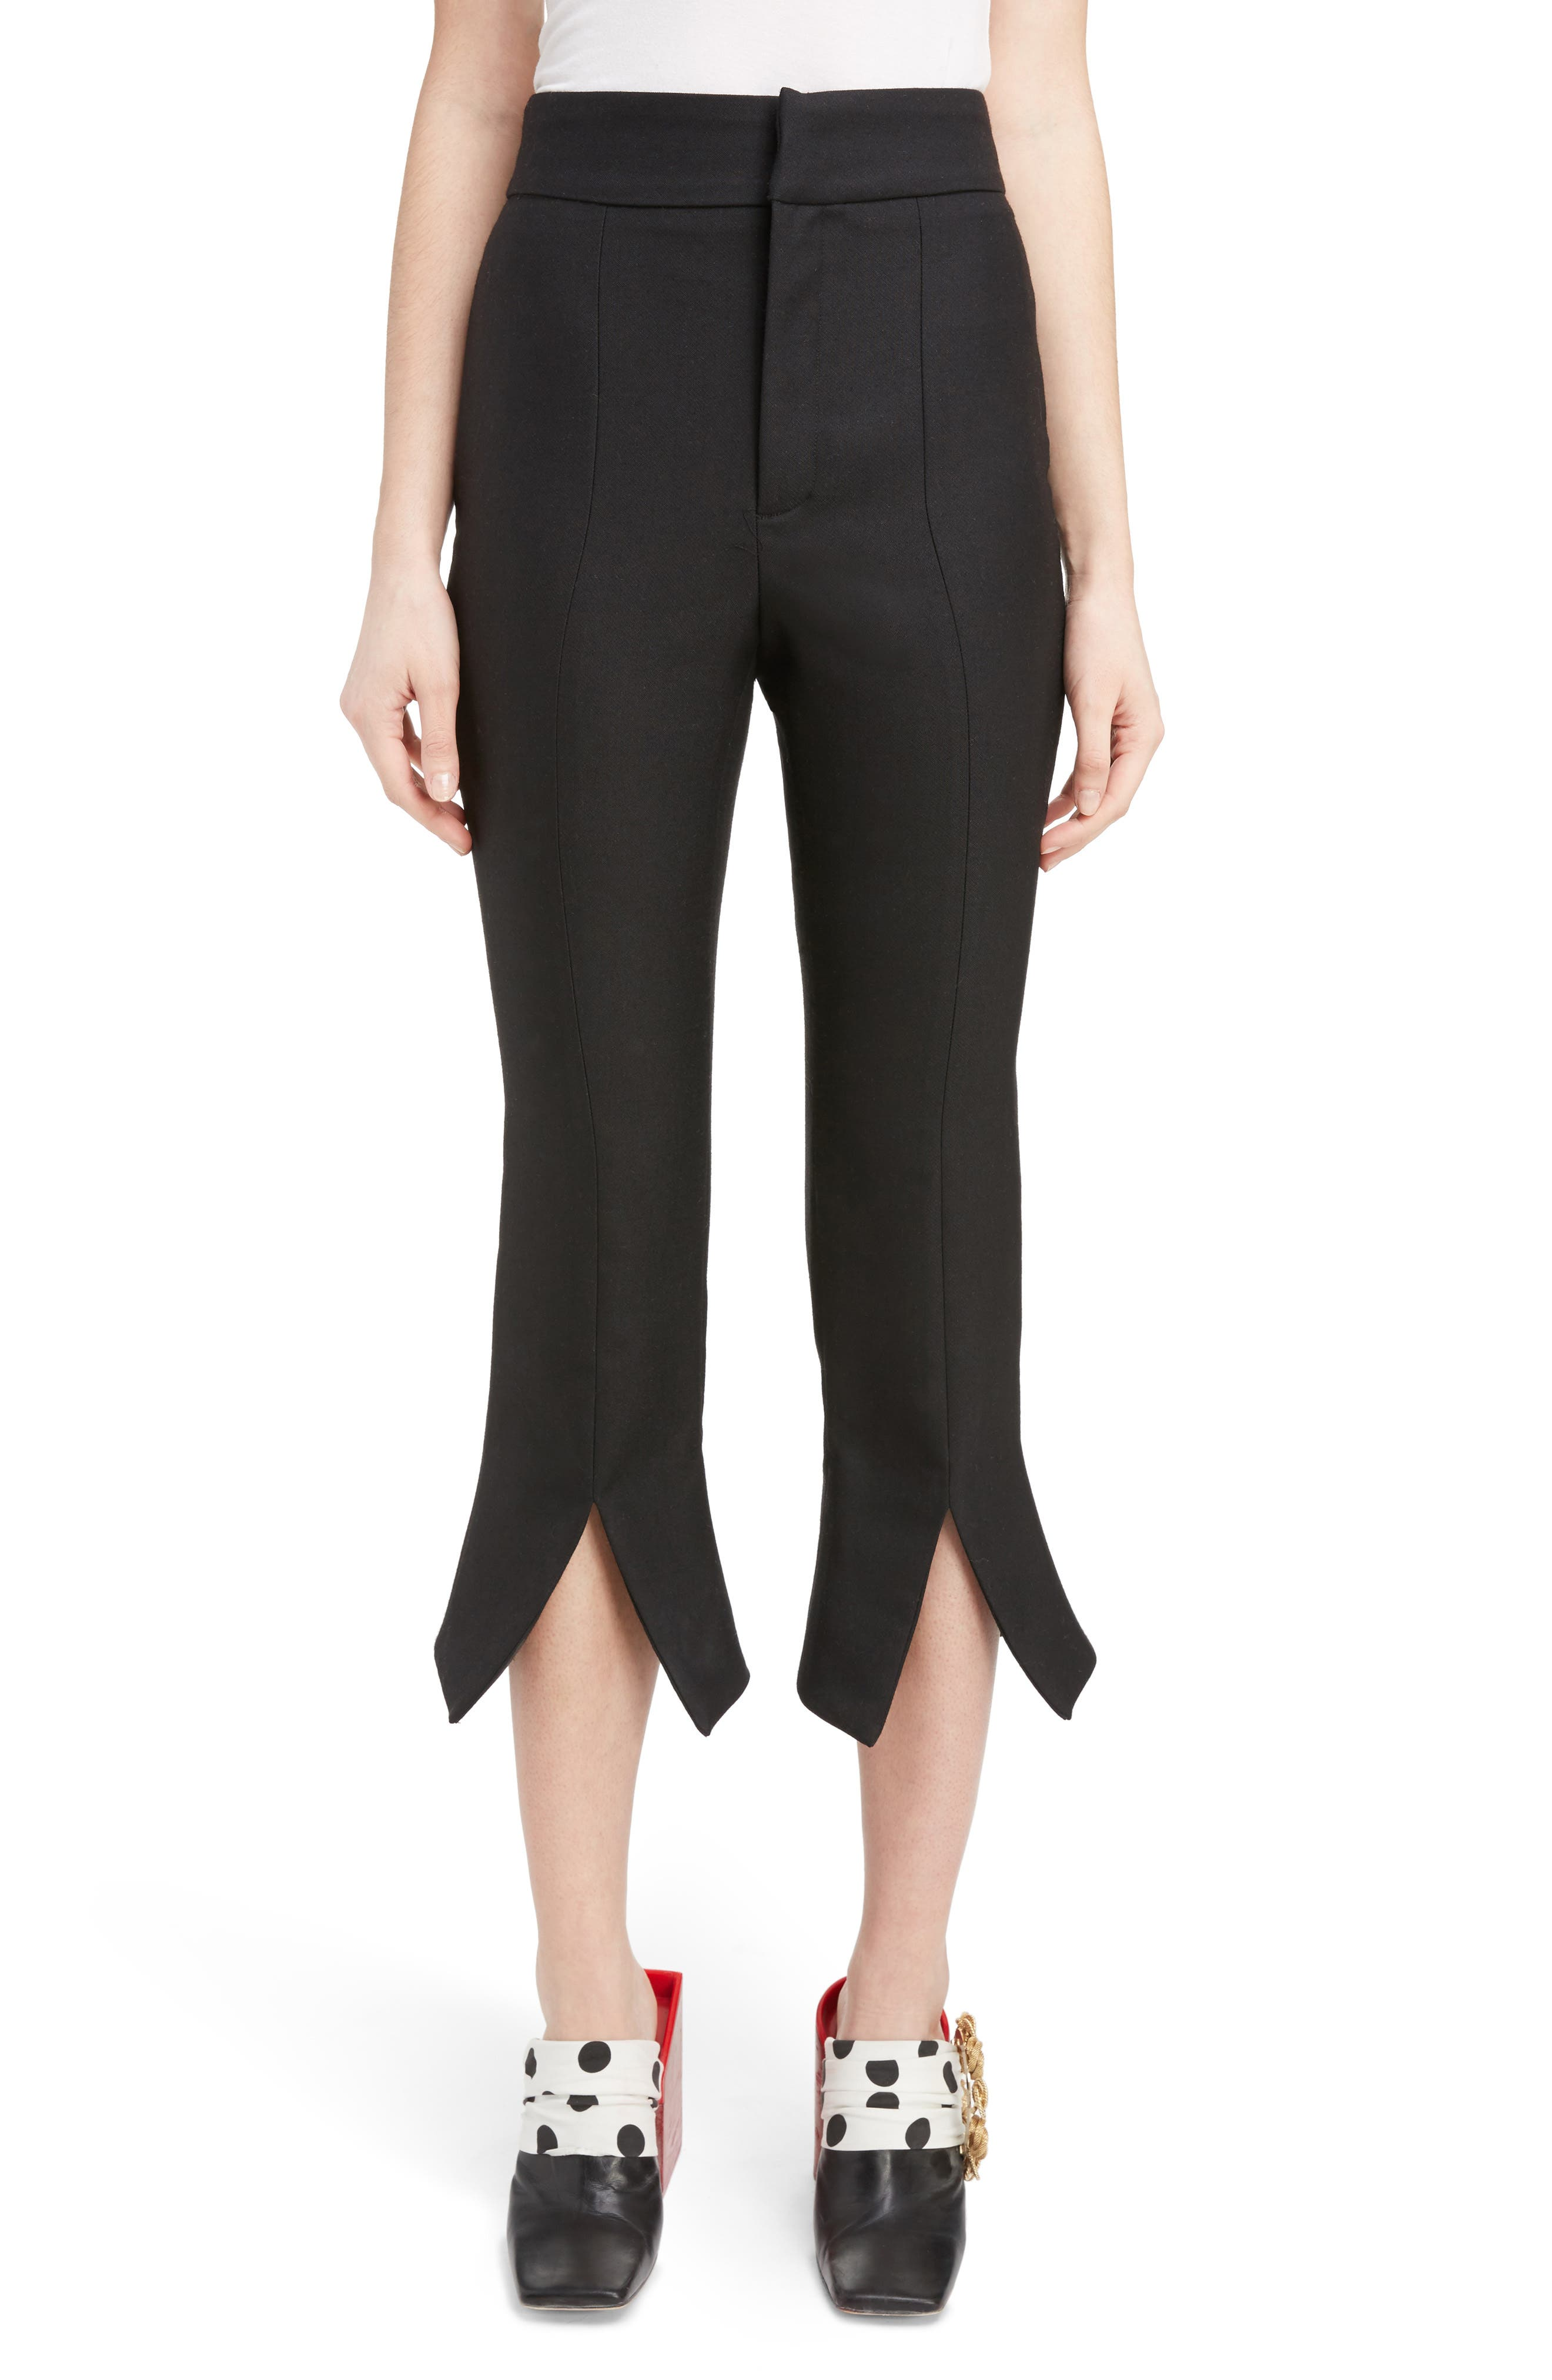 Alternate Image 1 Selected - Jacquemus Slit Cuff Crop Flare Pants